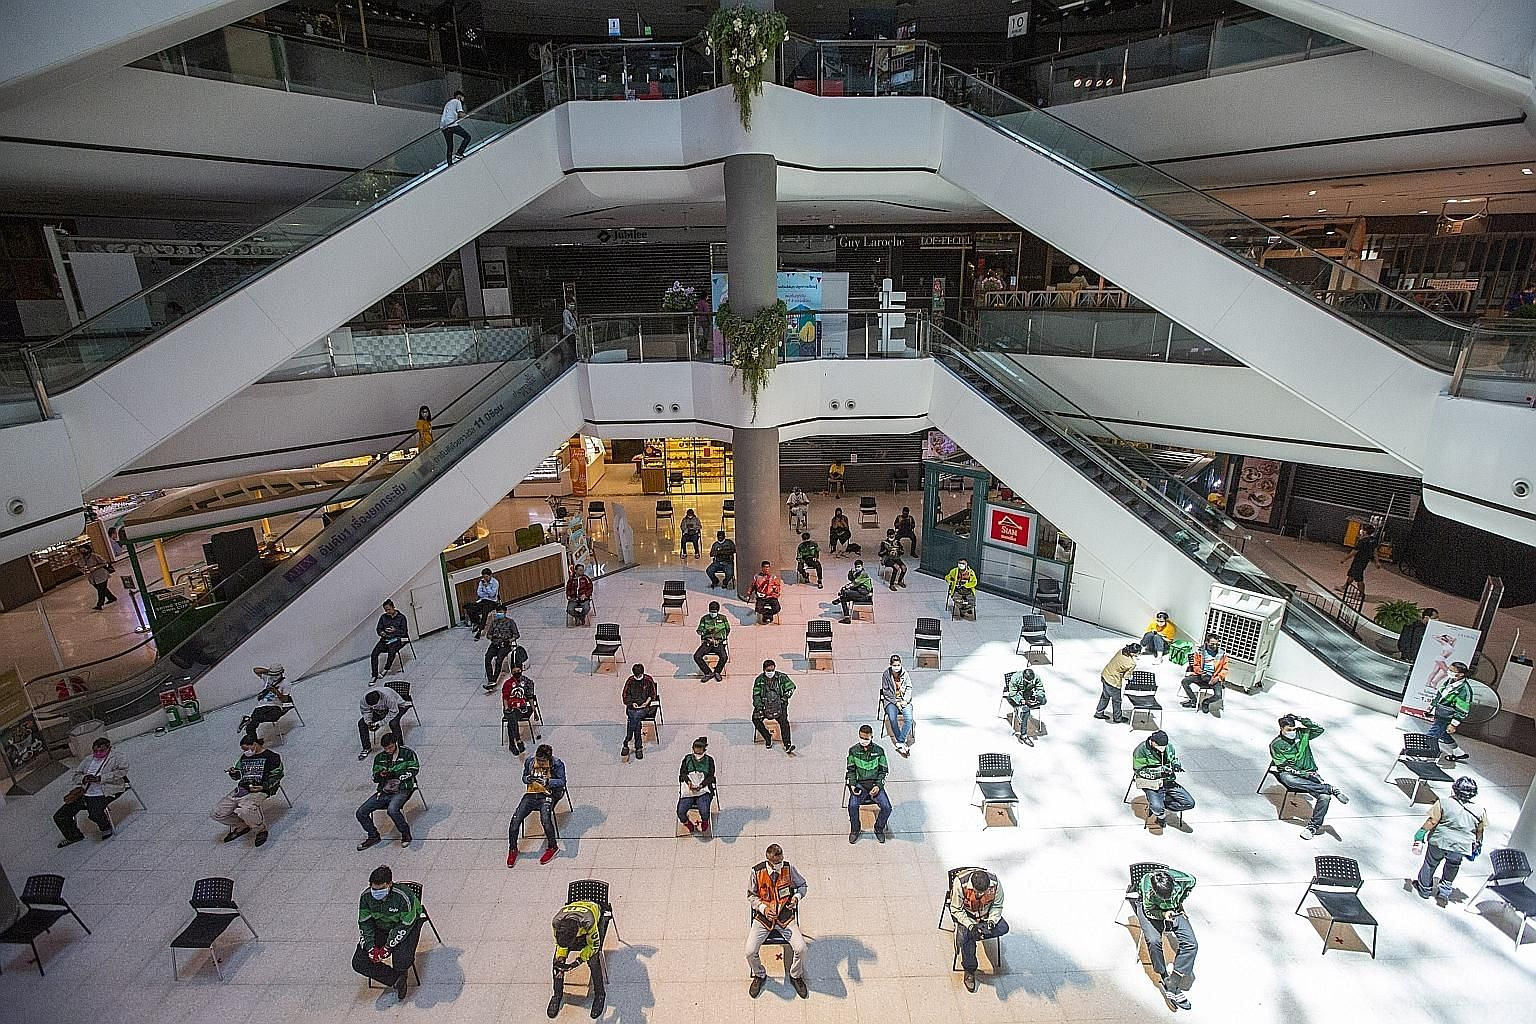 Food delivery couriers keeping a distance from one another while waiting at the Central Plaza Pinklao mall during a partial lockdown in Bangkok yesterday. With over 1,500 cases of coronavirus infections recorded in Thailand so far, even relaxed folk